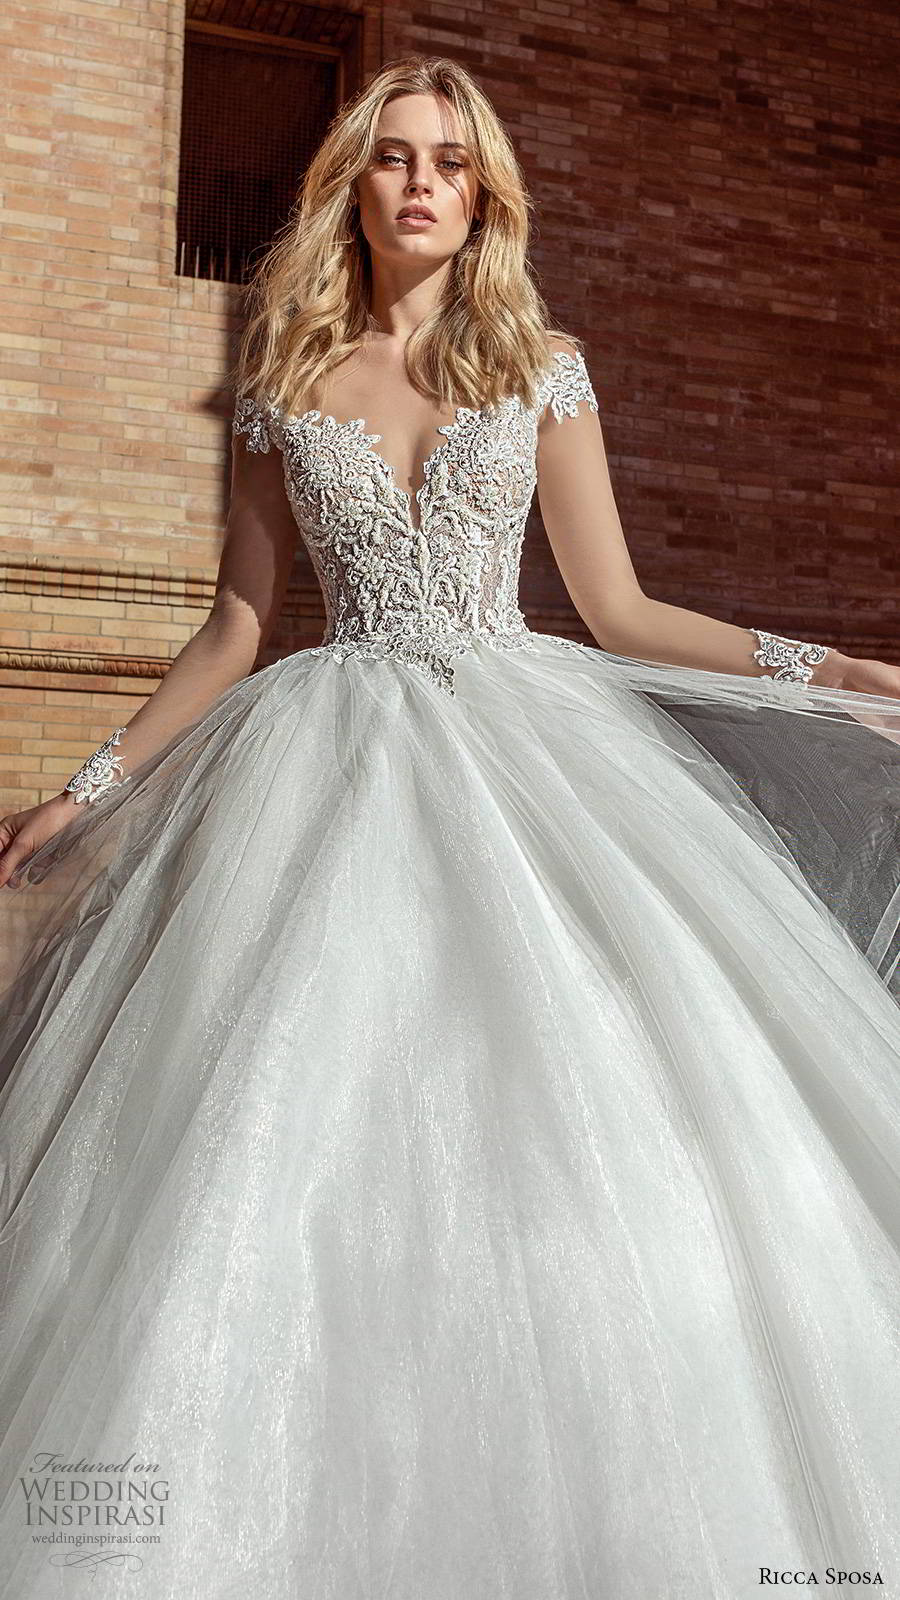 ricca sposa 2019 bridal illusion long sleeves off shoulder sweetheart neckline embellished bodice romantic a line ball gown wedding dress v back cathedral train (4) mv